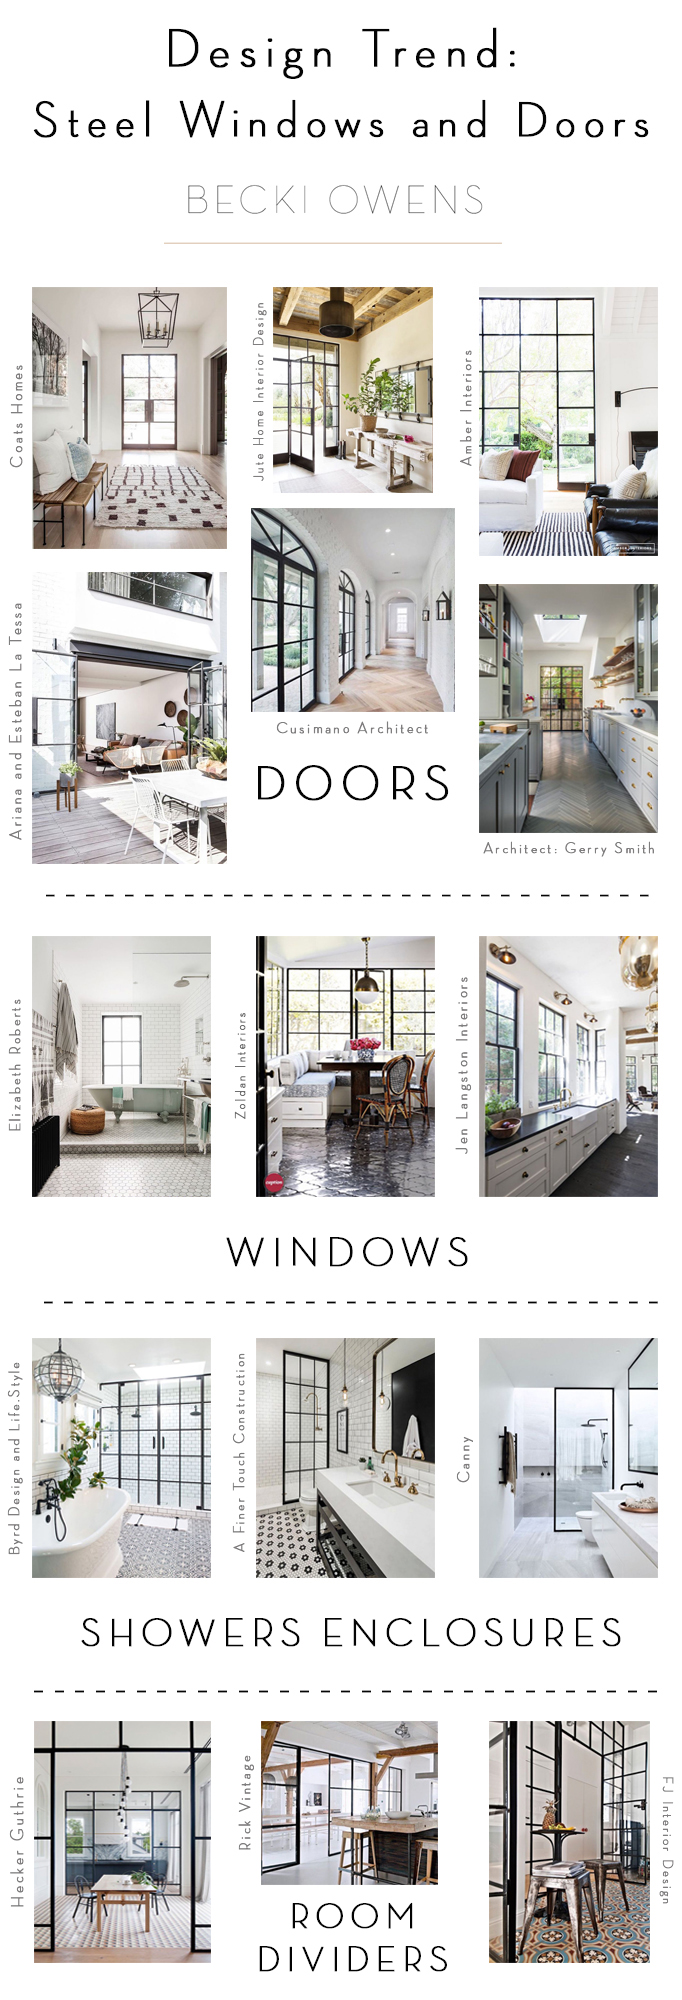 design trend steel windows and door  sc 1 st  Becki Owens & Steel Windows and Doors